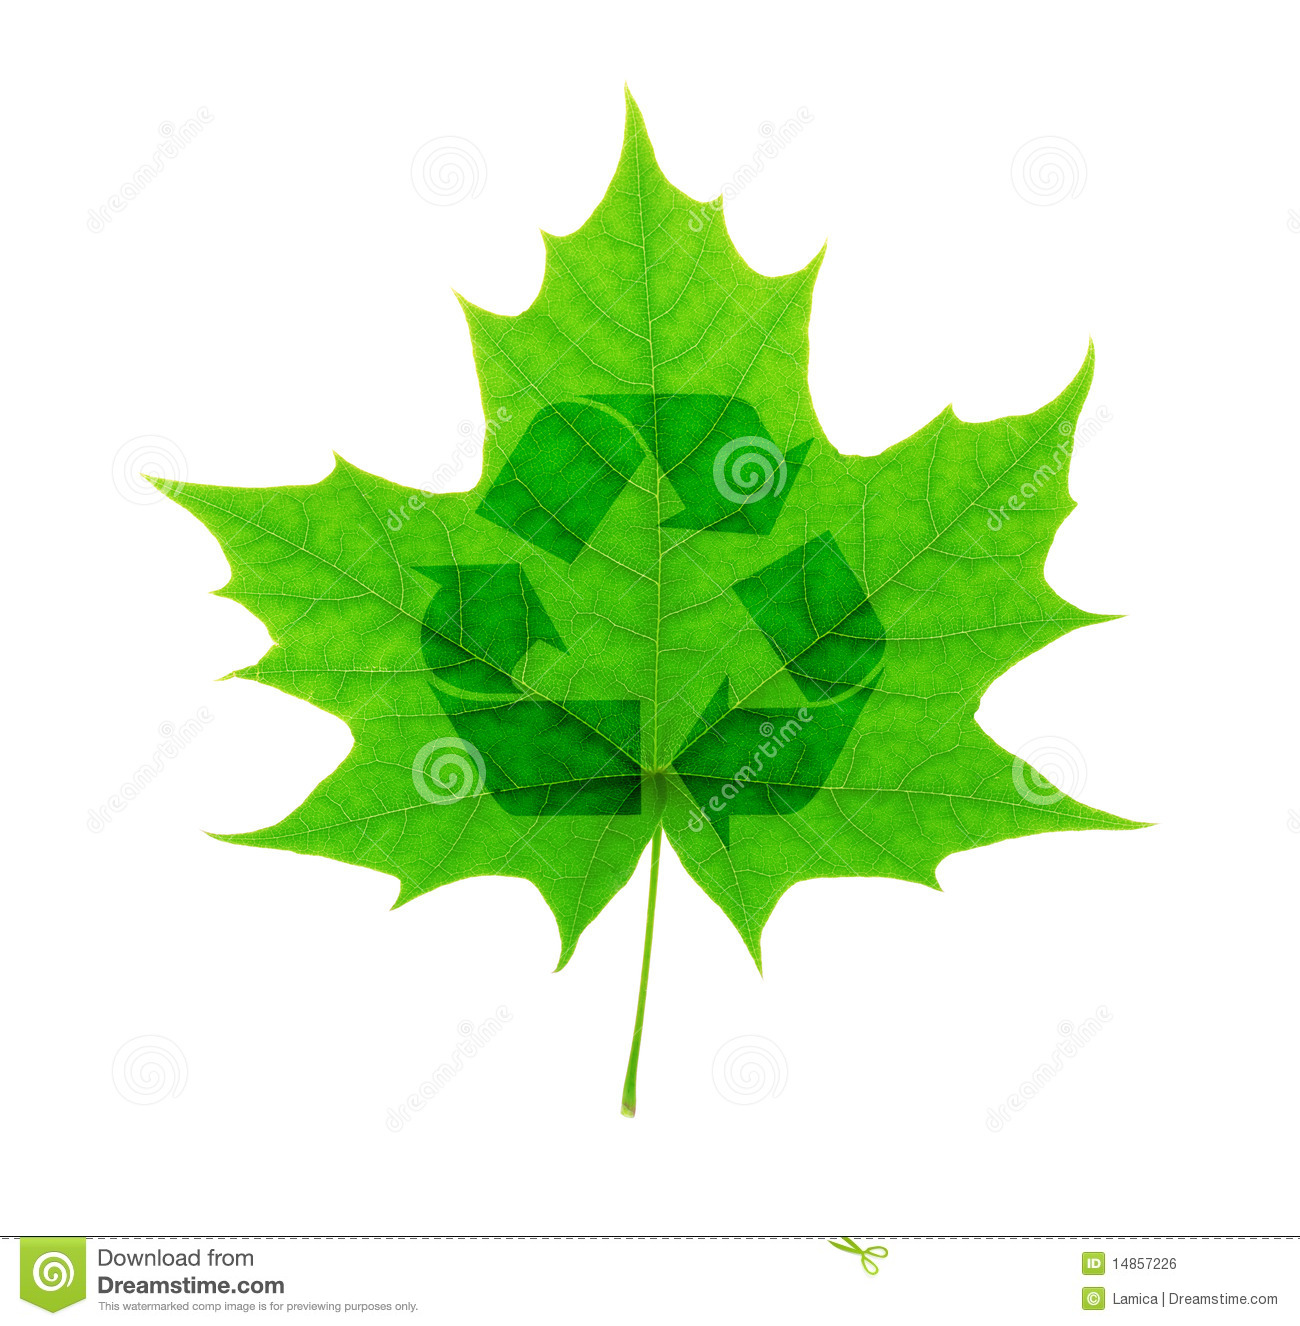 Recycle symbol over green maple leaf